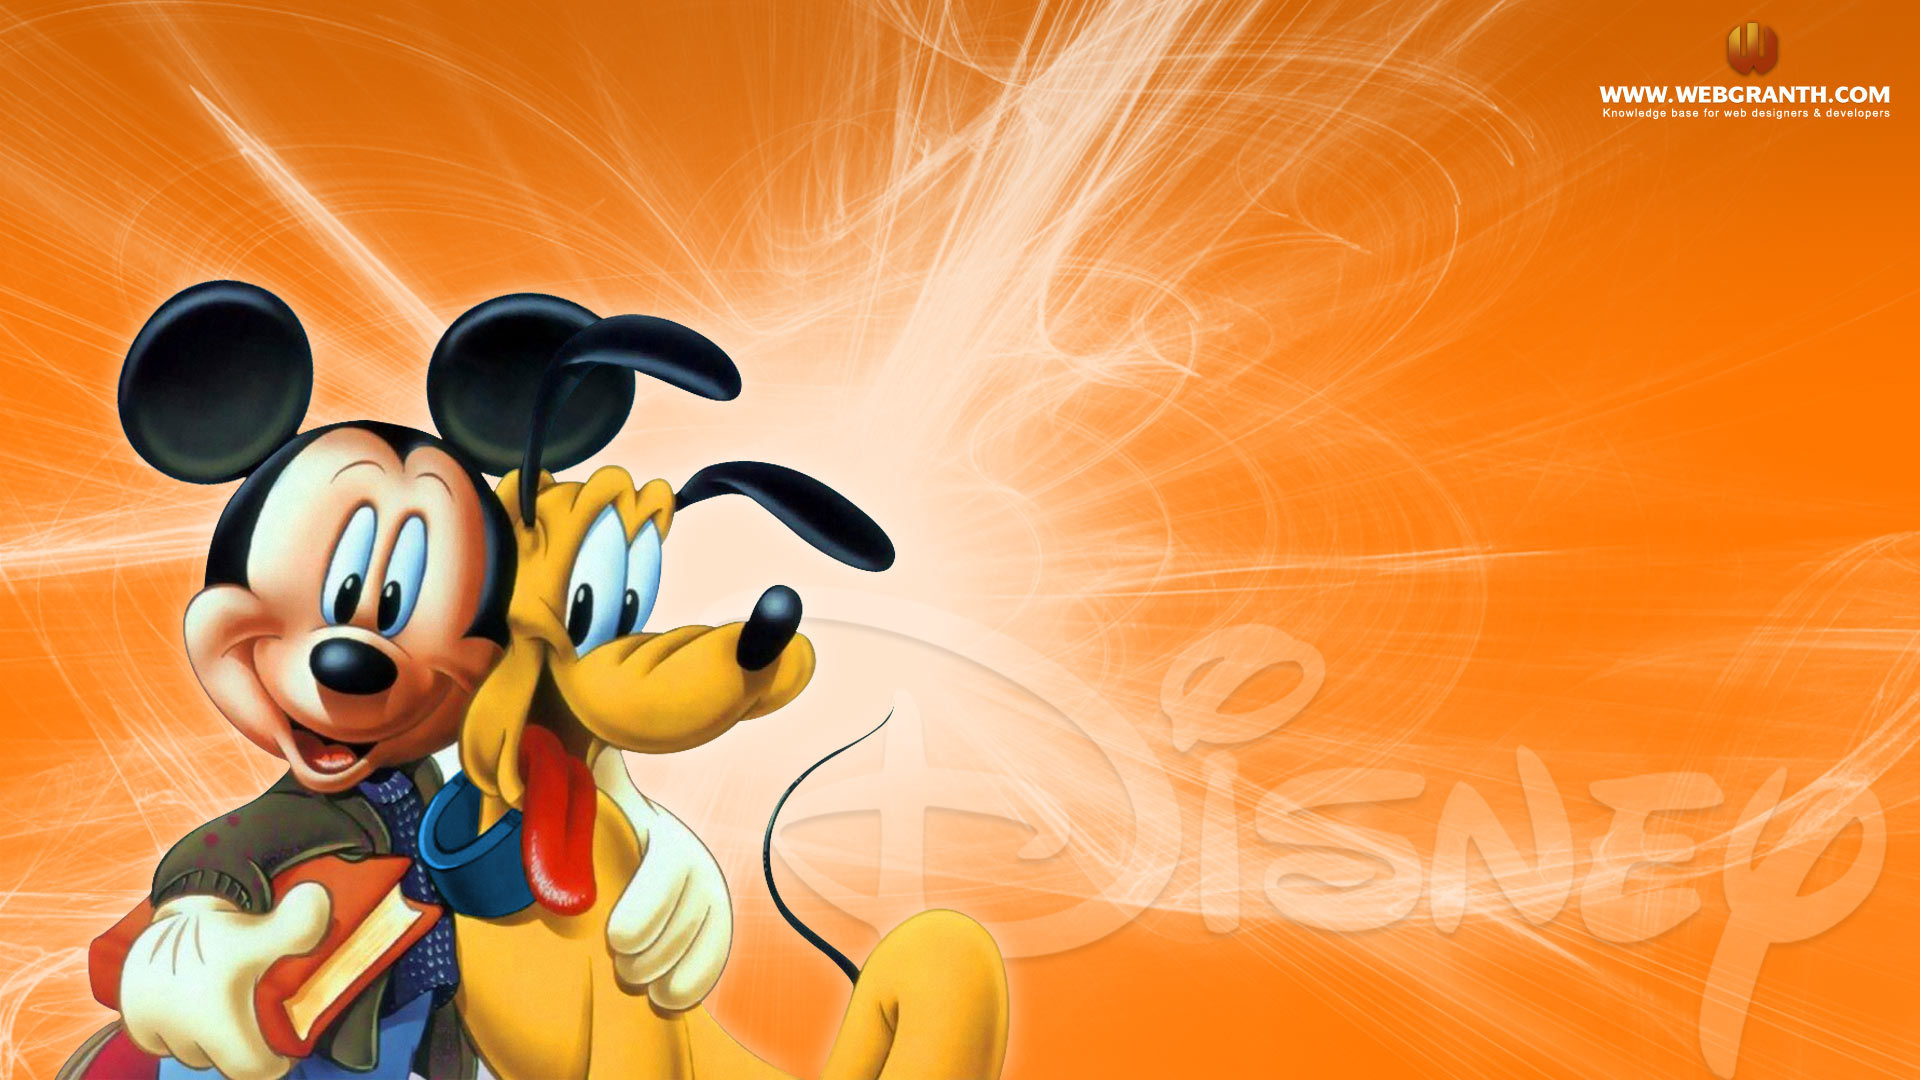 Cartoon Mickey Mouse Wallpaper For Iphone Free Wallpaper Download 1920x1080